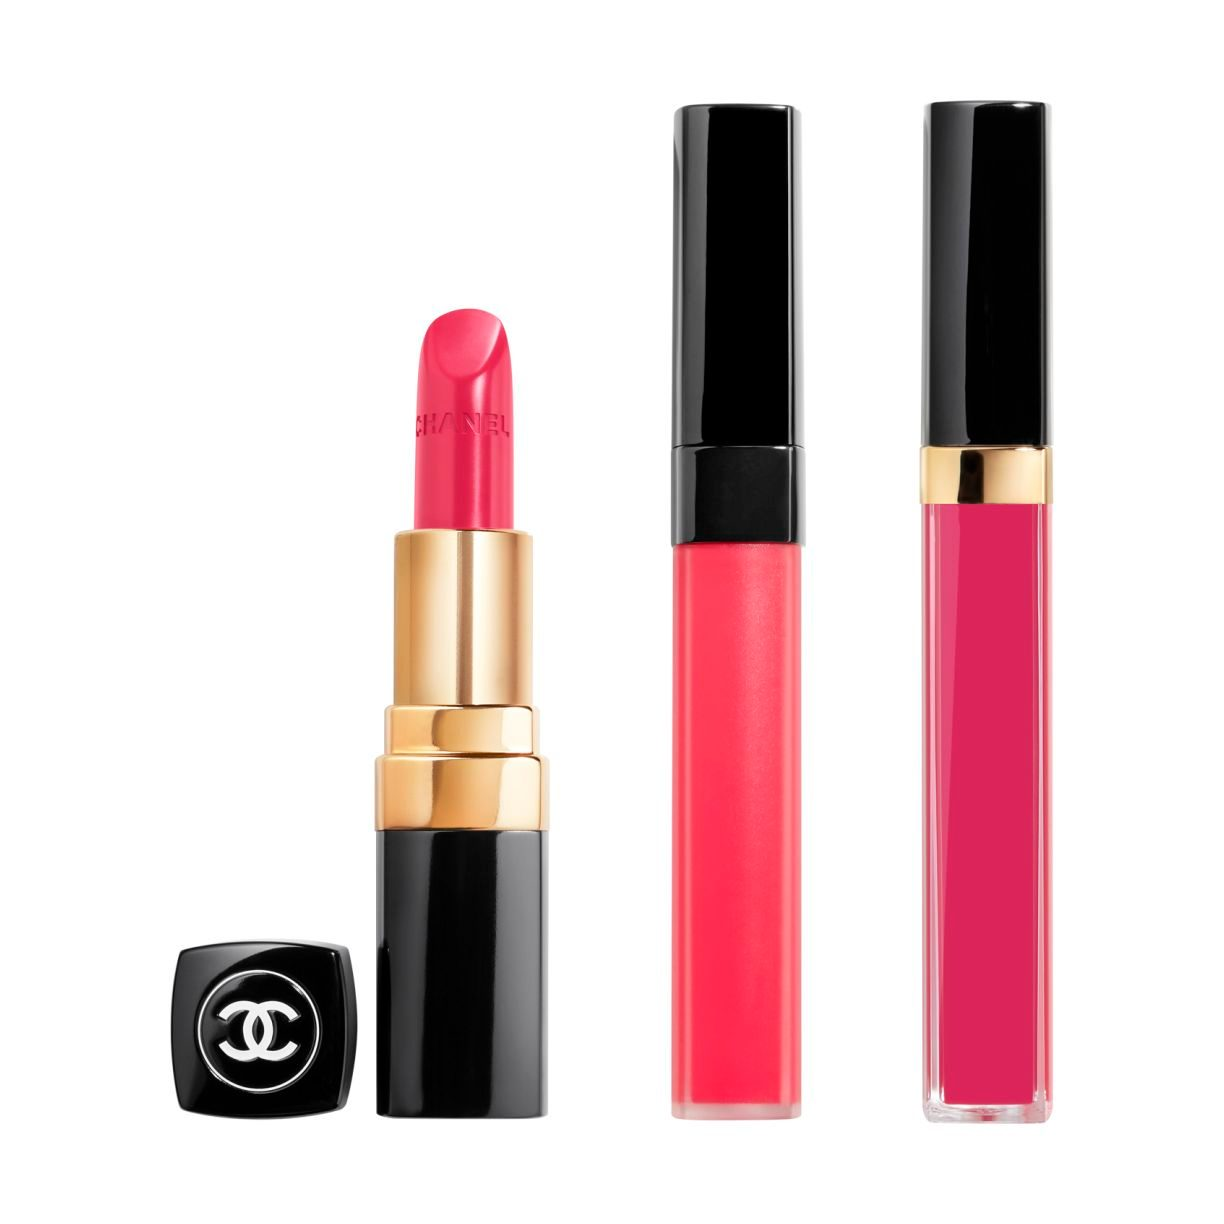 ROUGE COCO LIP BLUSH, ROUGE COCO GLOSS AND ROUGE COCO ROUGE COCO trio 1pce